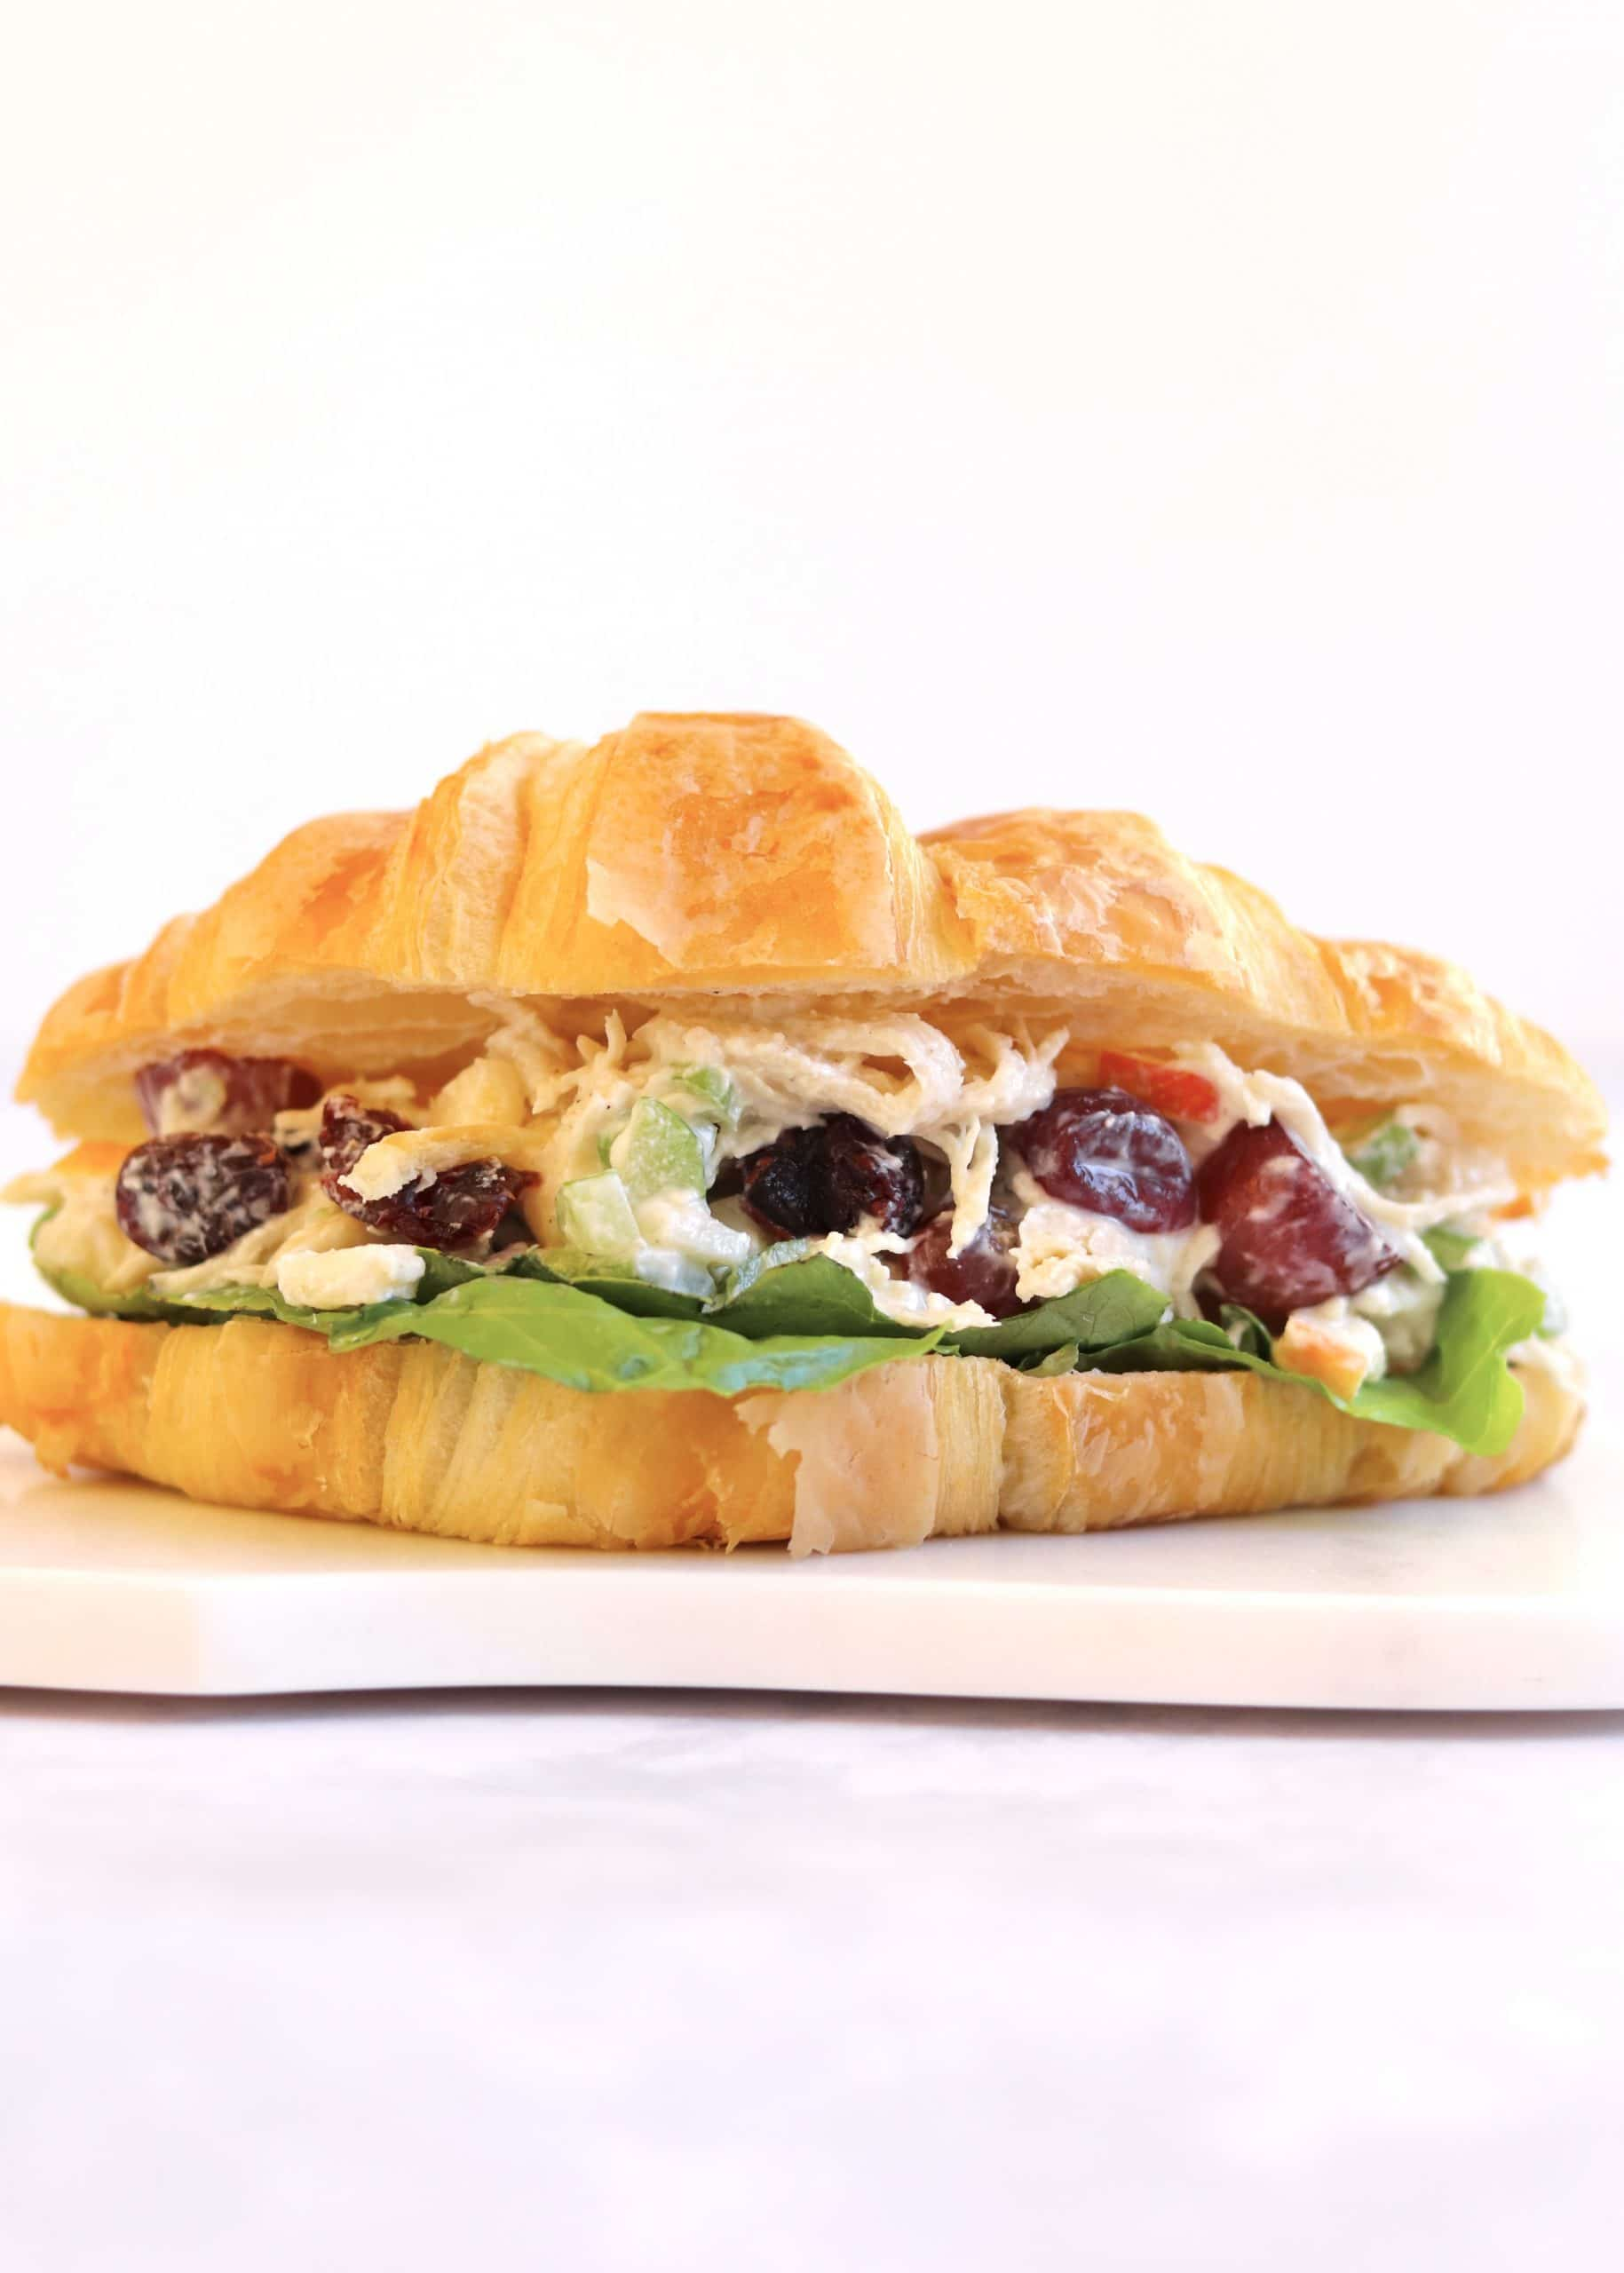 Chicken Salad Sandwich on a Croissant